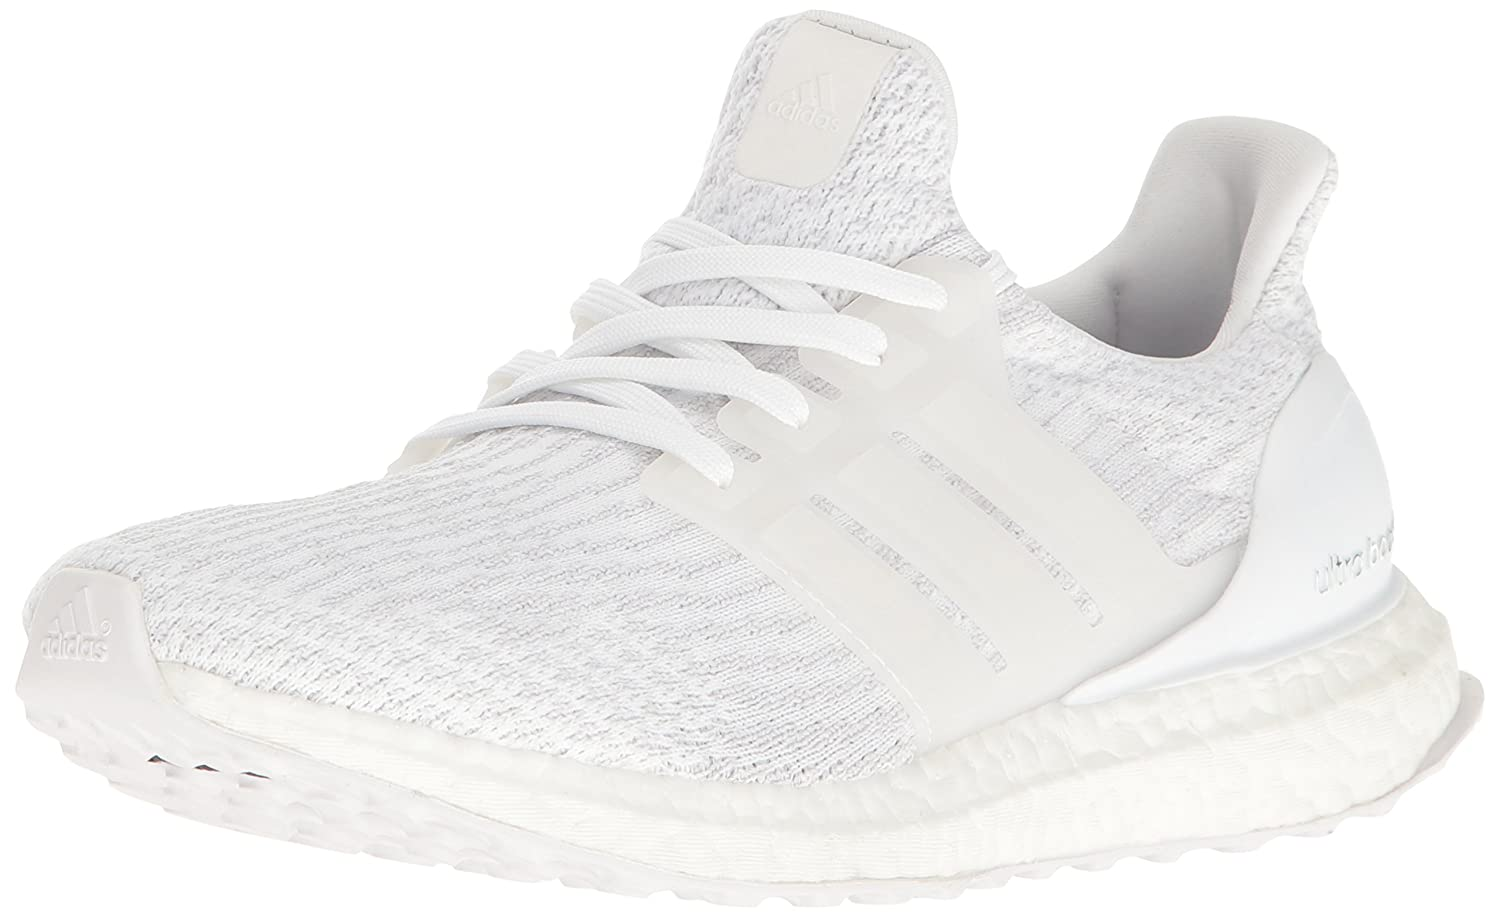 adidas Women's Ultraboost W Running Shoe B01H68T70M 6.5 B(M) US|White/White/Crystal White